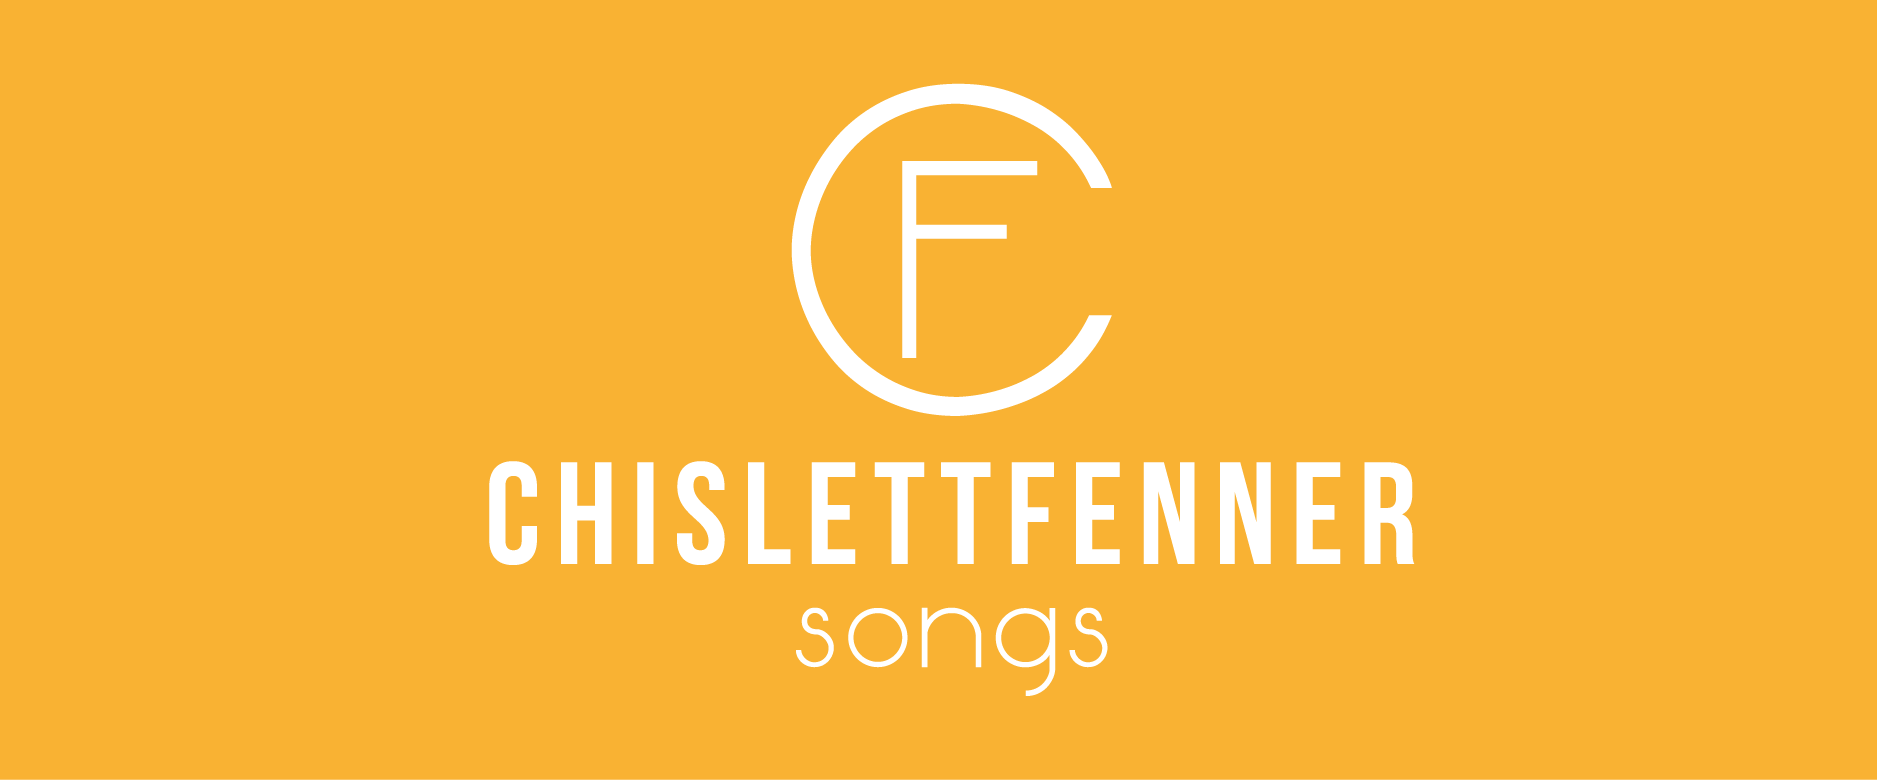 Chislett Fenner Songs